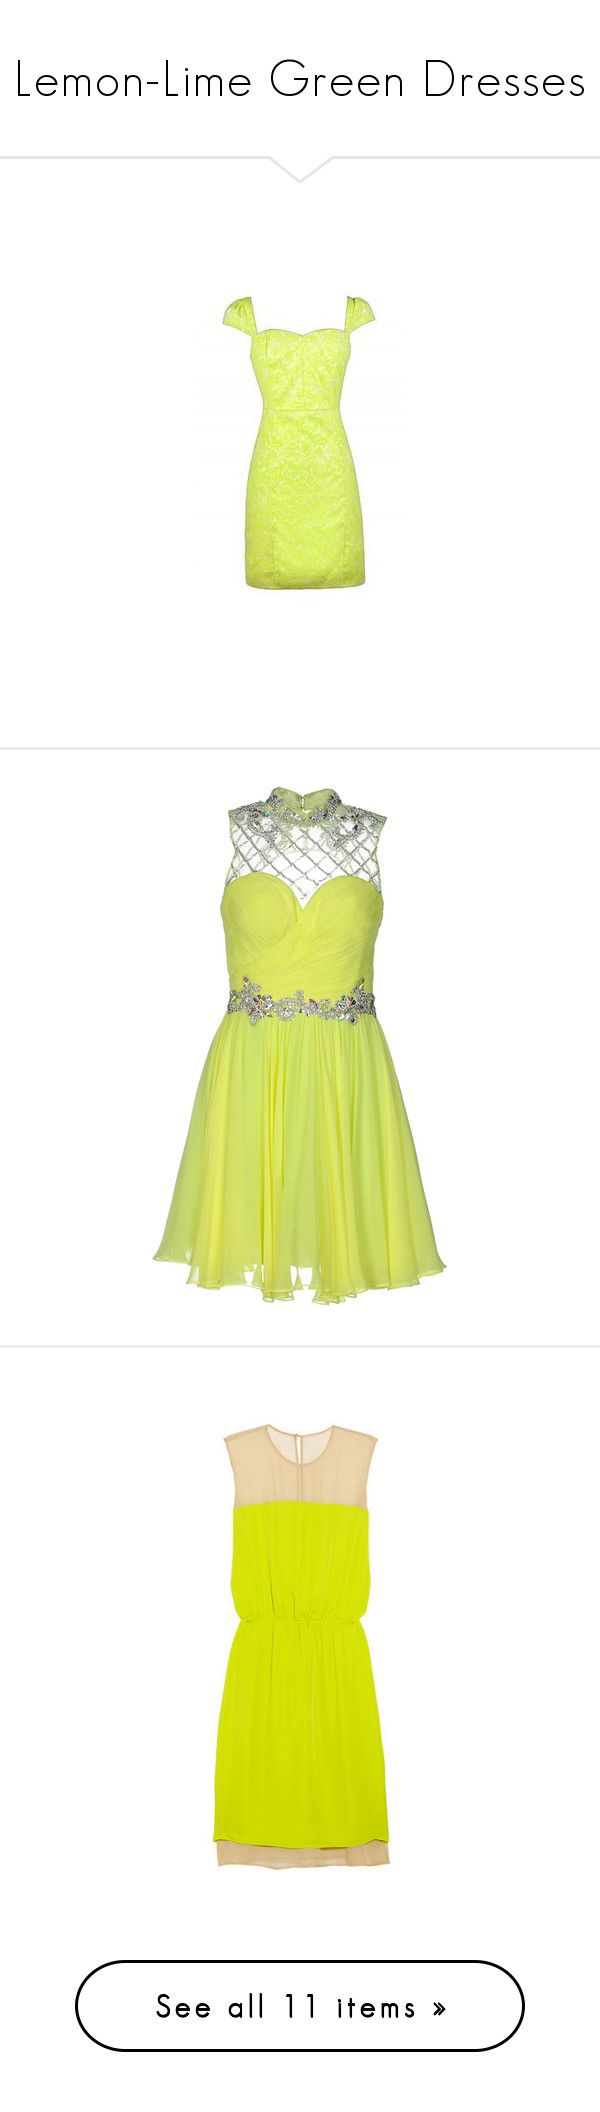 """""""Lemon-Lime Green Dresses"""" by tegan-b-riley on Polyvore featuring dresses, yellow, yellow sequin dress, short sequin dress, short sequin cocktail dresses, yellow sleeveless dress, short flare dress, yellow dress, boulee dress and nylon dress"""